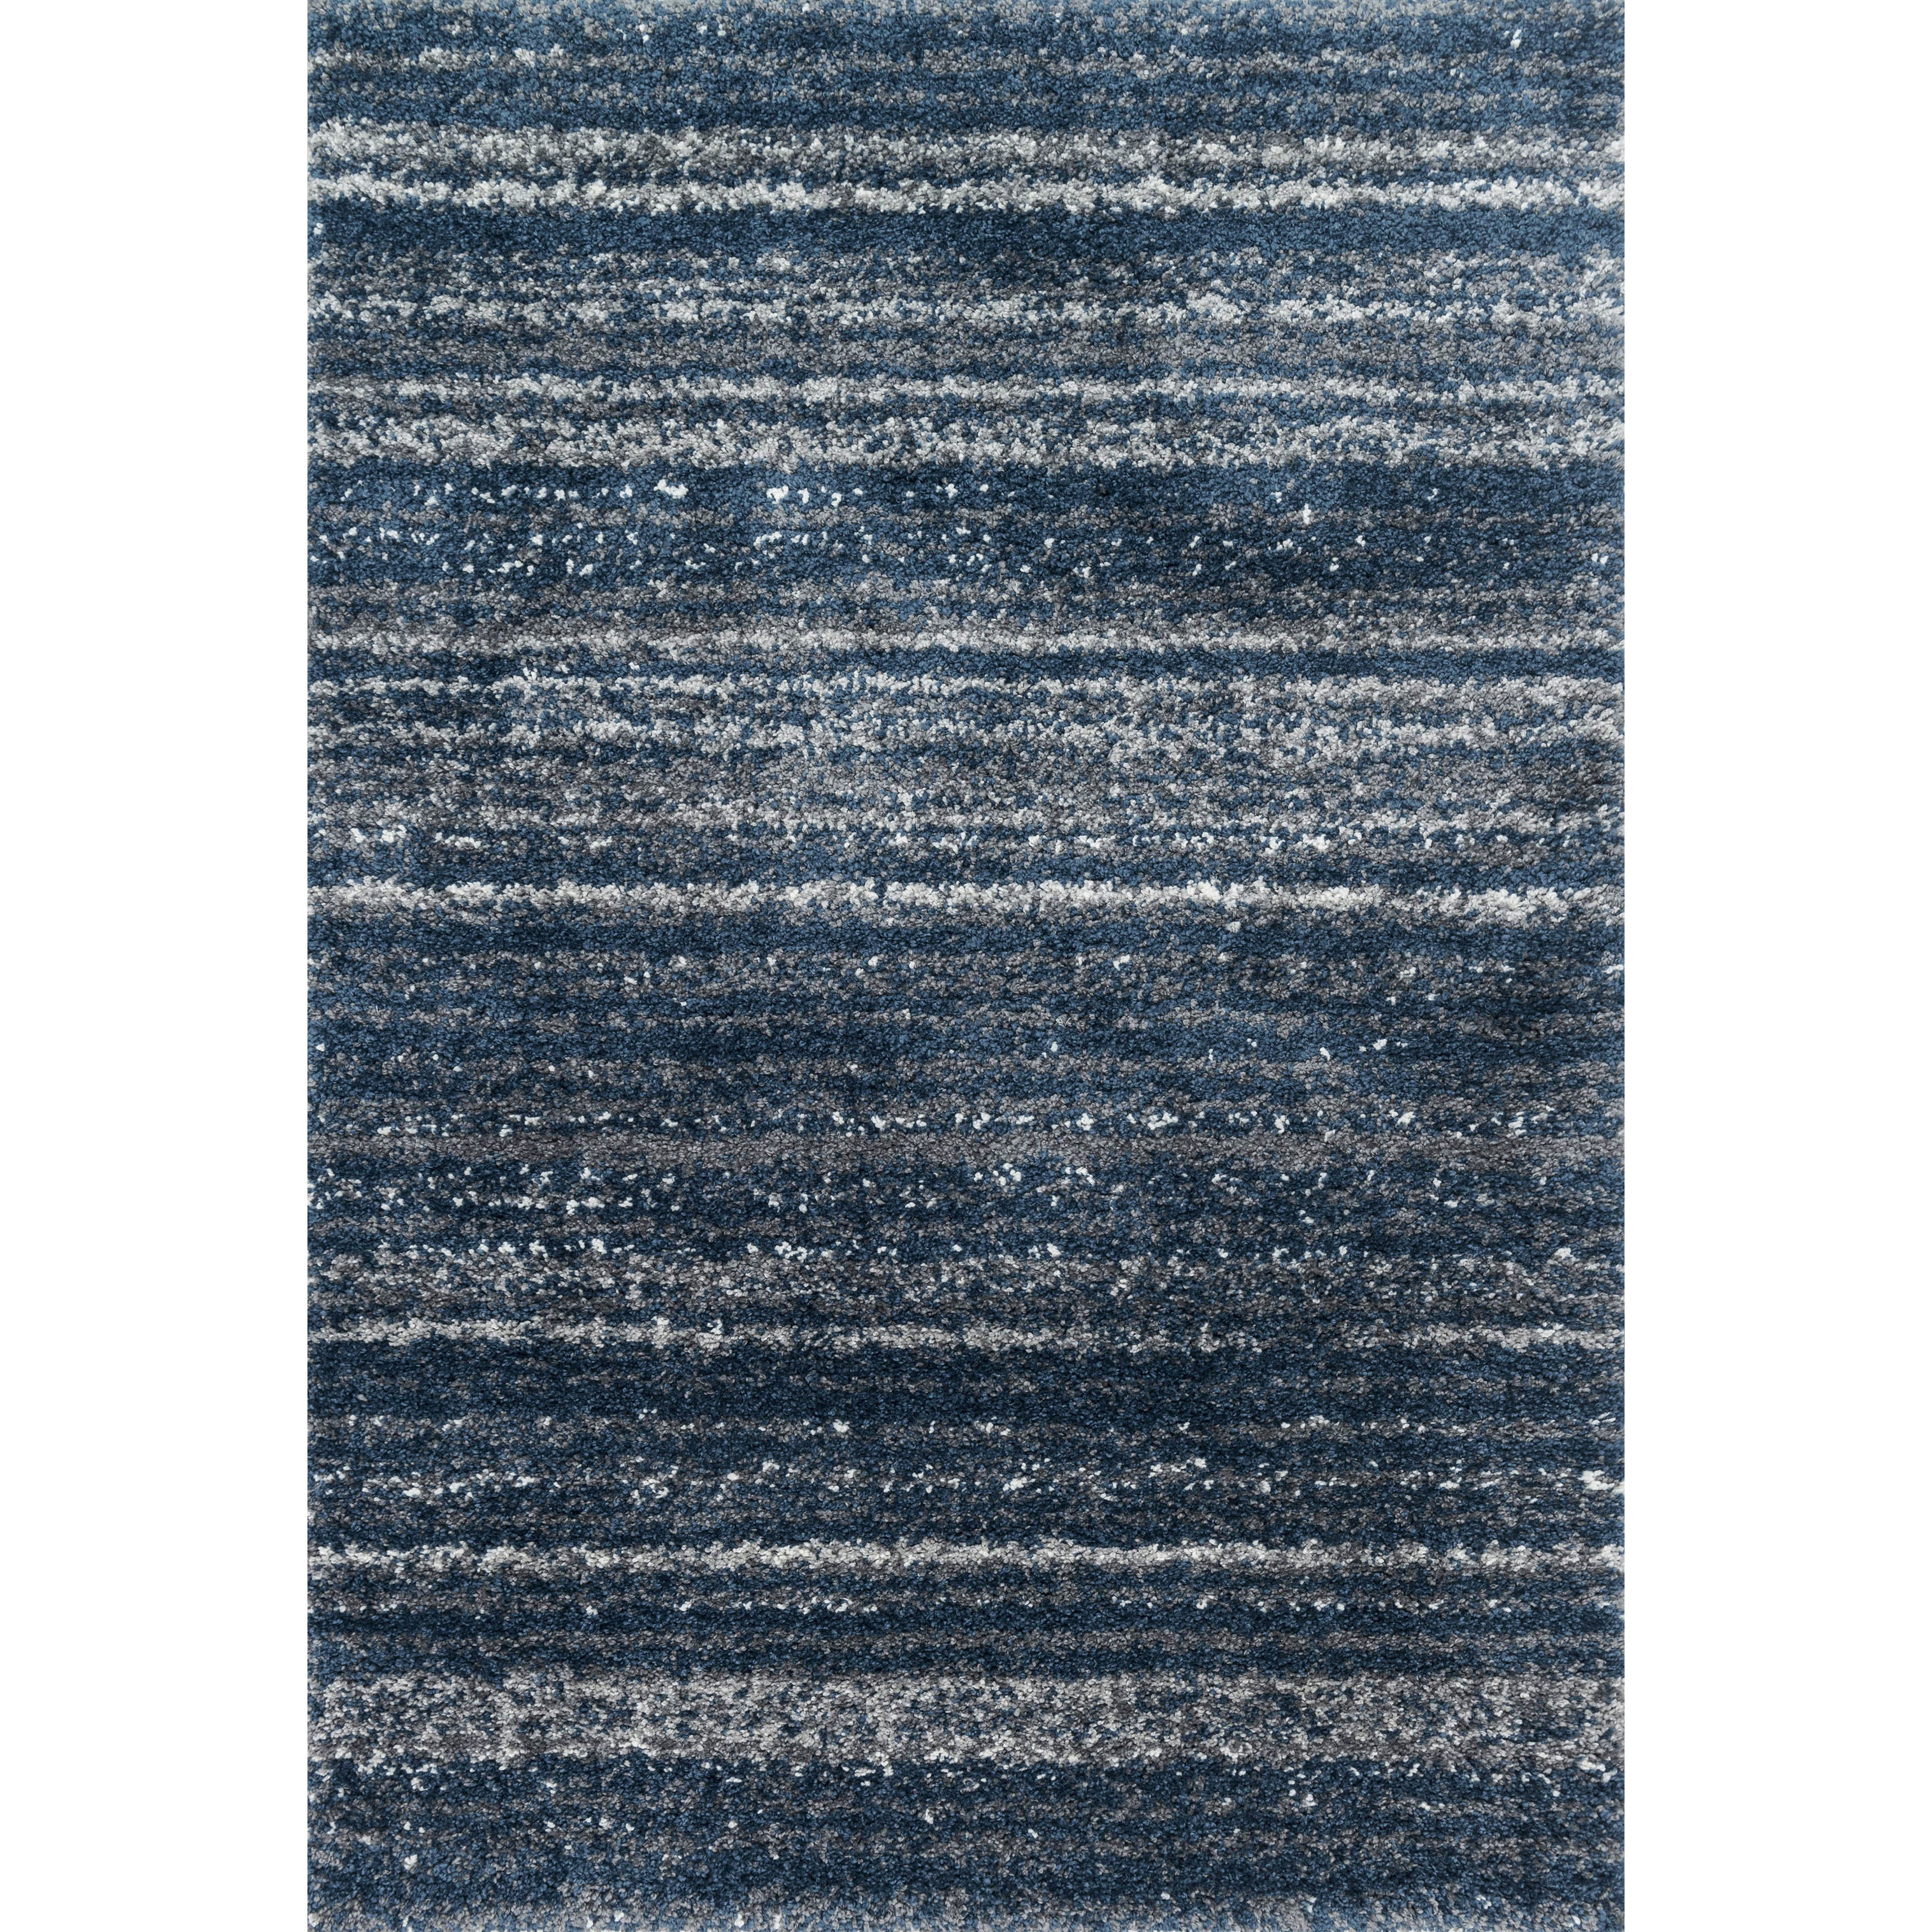 Contemporary Navy Blue Abstract Shag Rug - 810 x 12 (Navy/Pewter - 810 x 12)